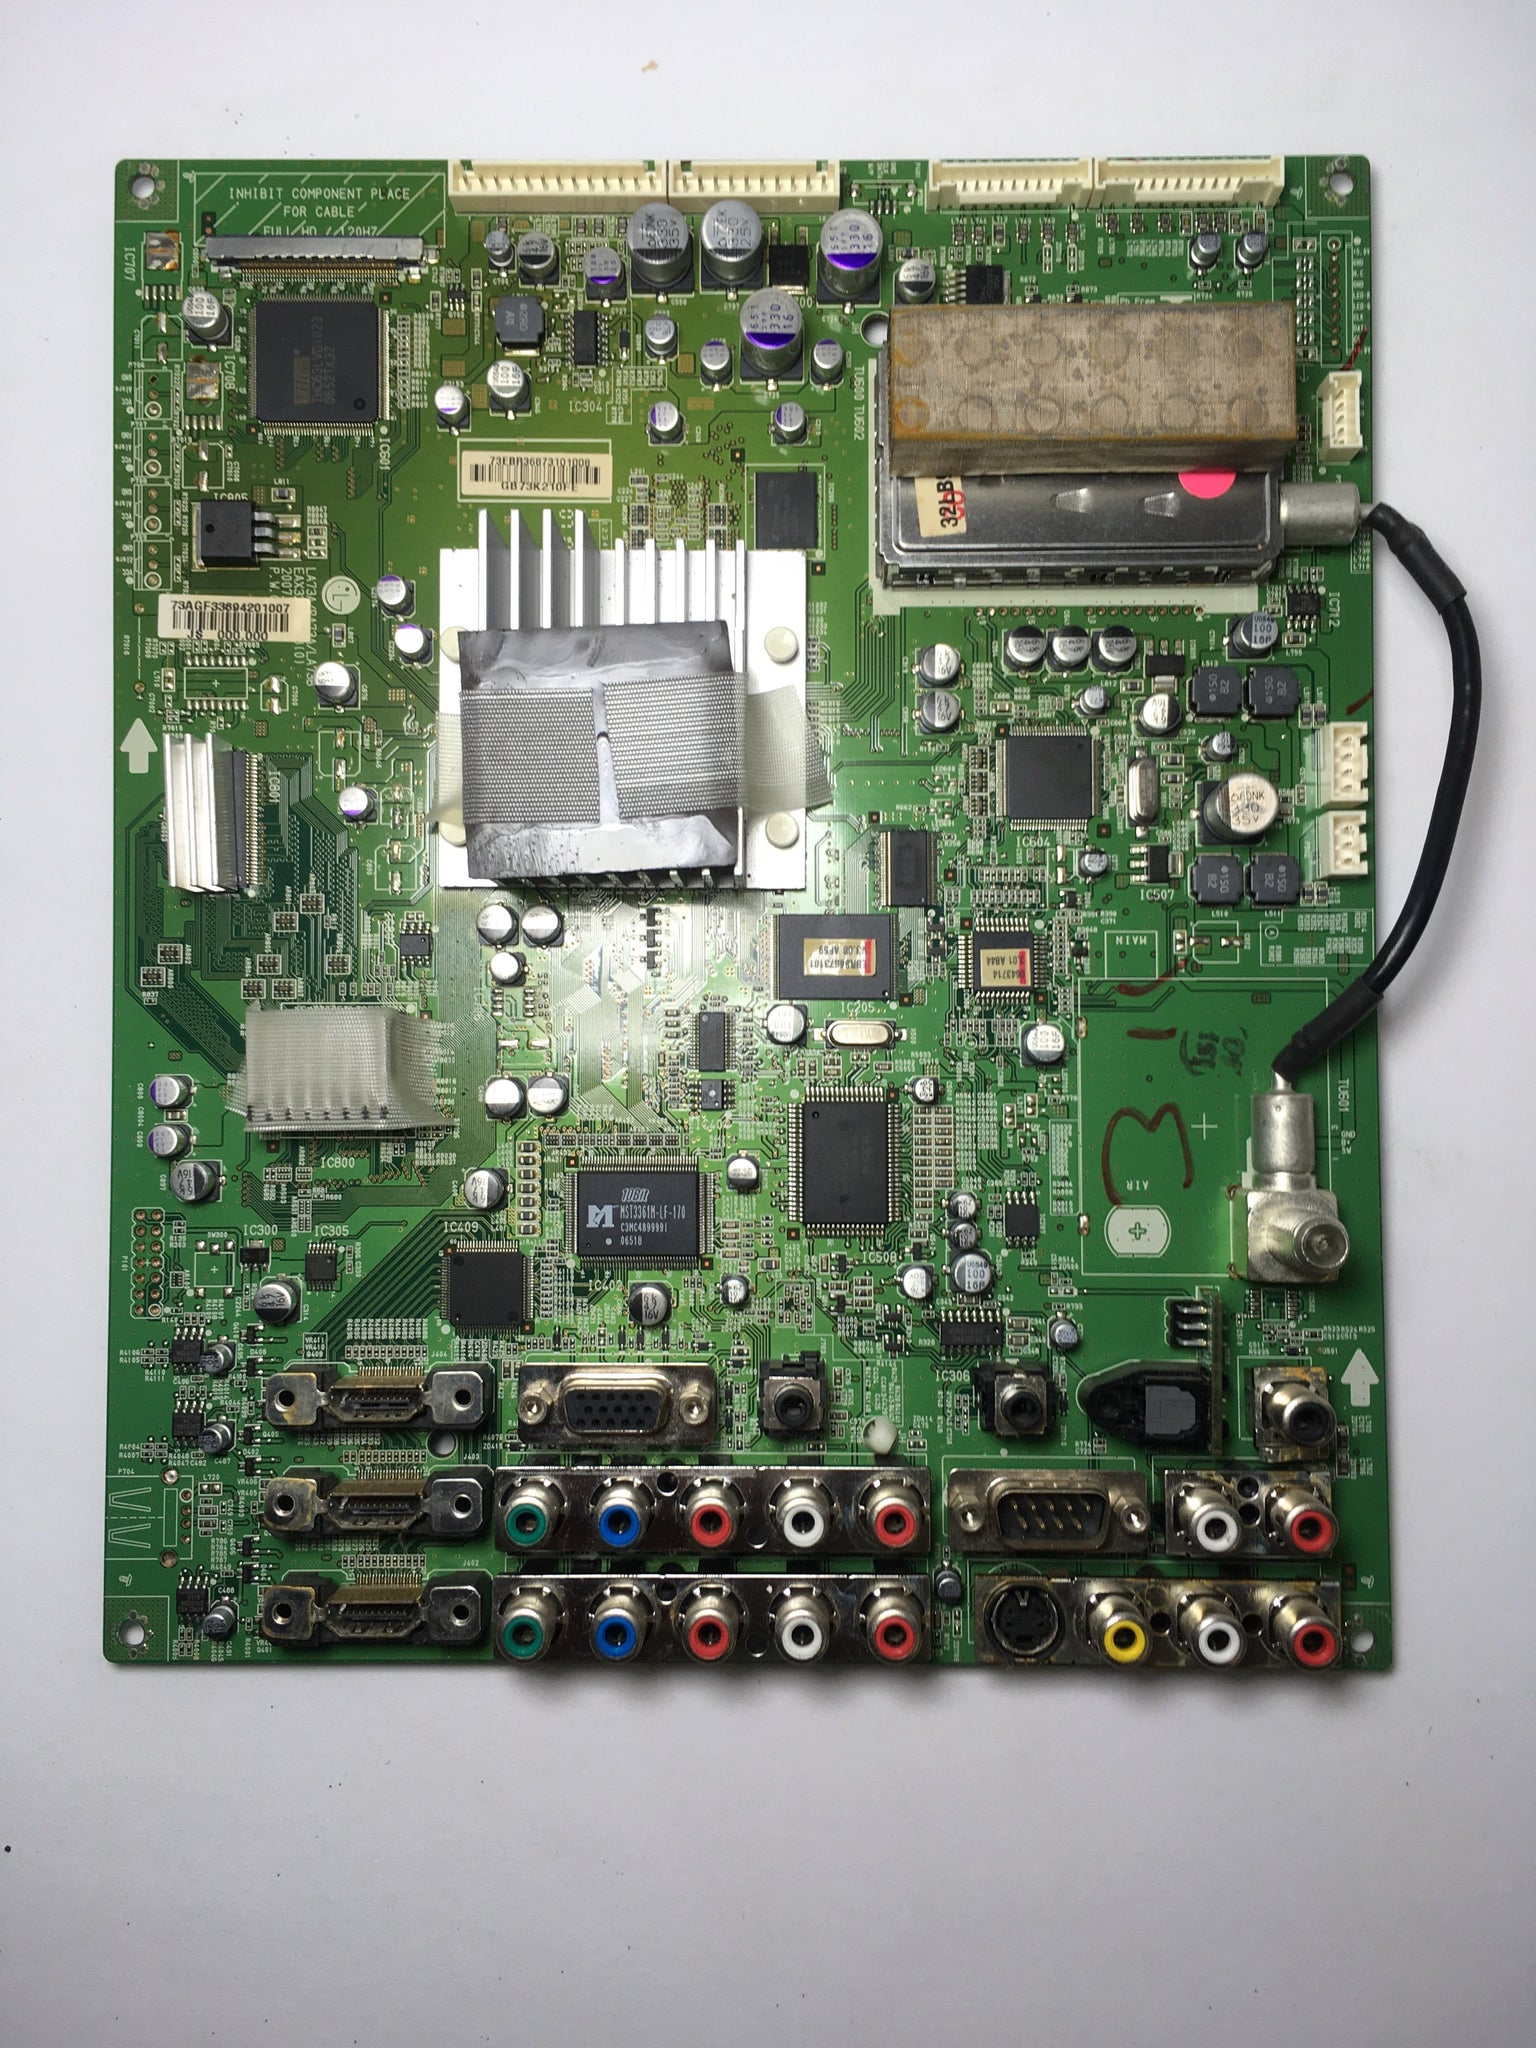 LG AGF33694201 (EBR36873101) Main Board for 32LB9D-UA